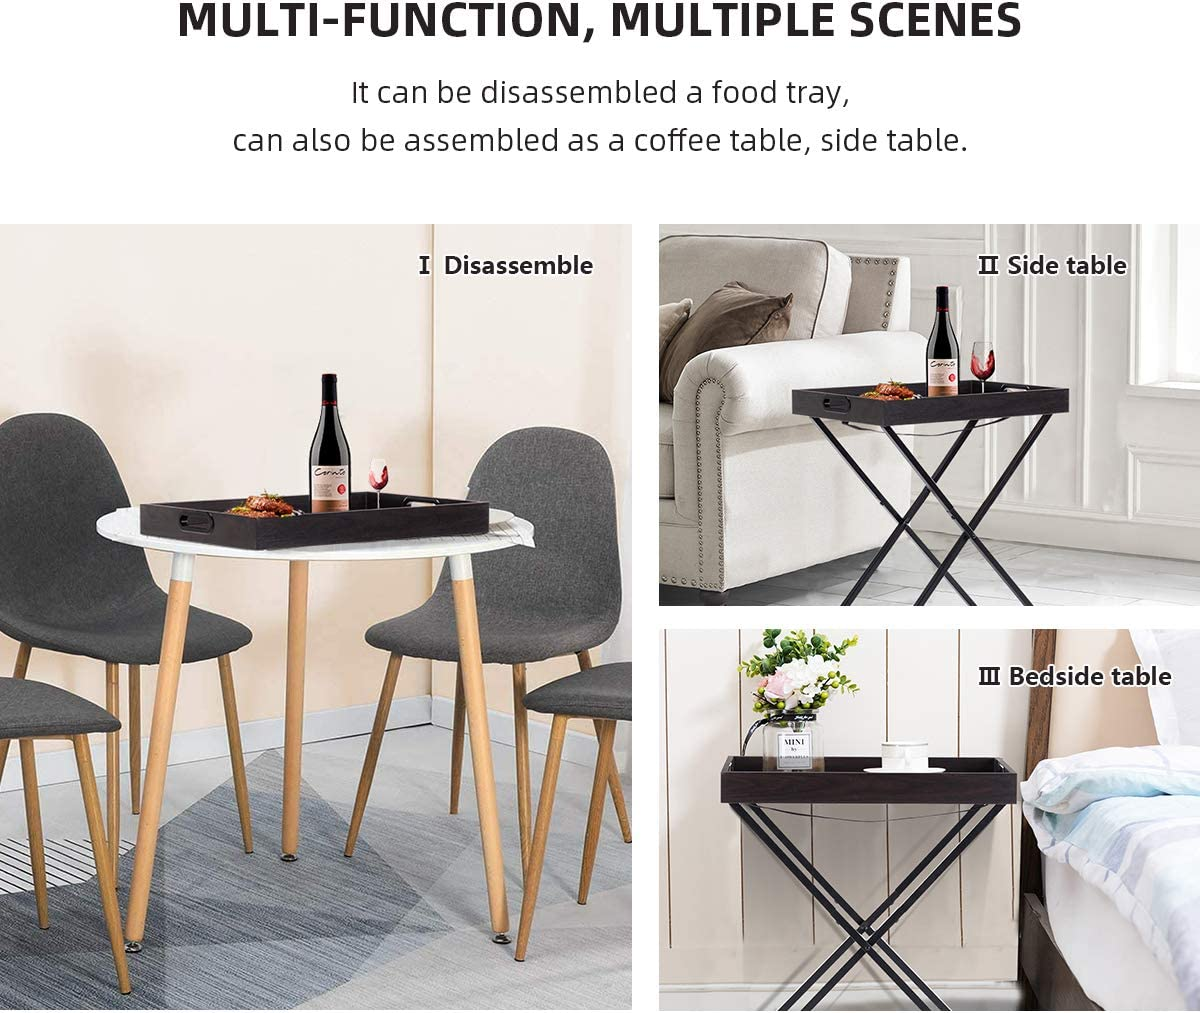 SEATZONE Multifunction Metal Base End Table Black Tray Table Home Decor Display and Home Accent Table